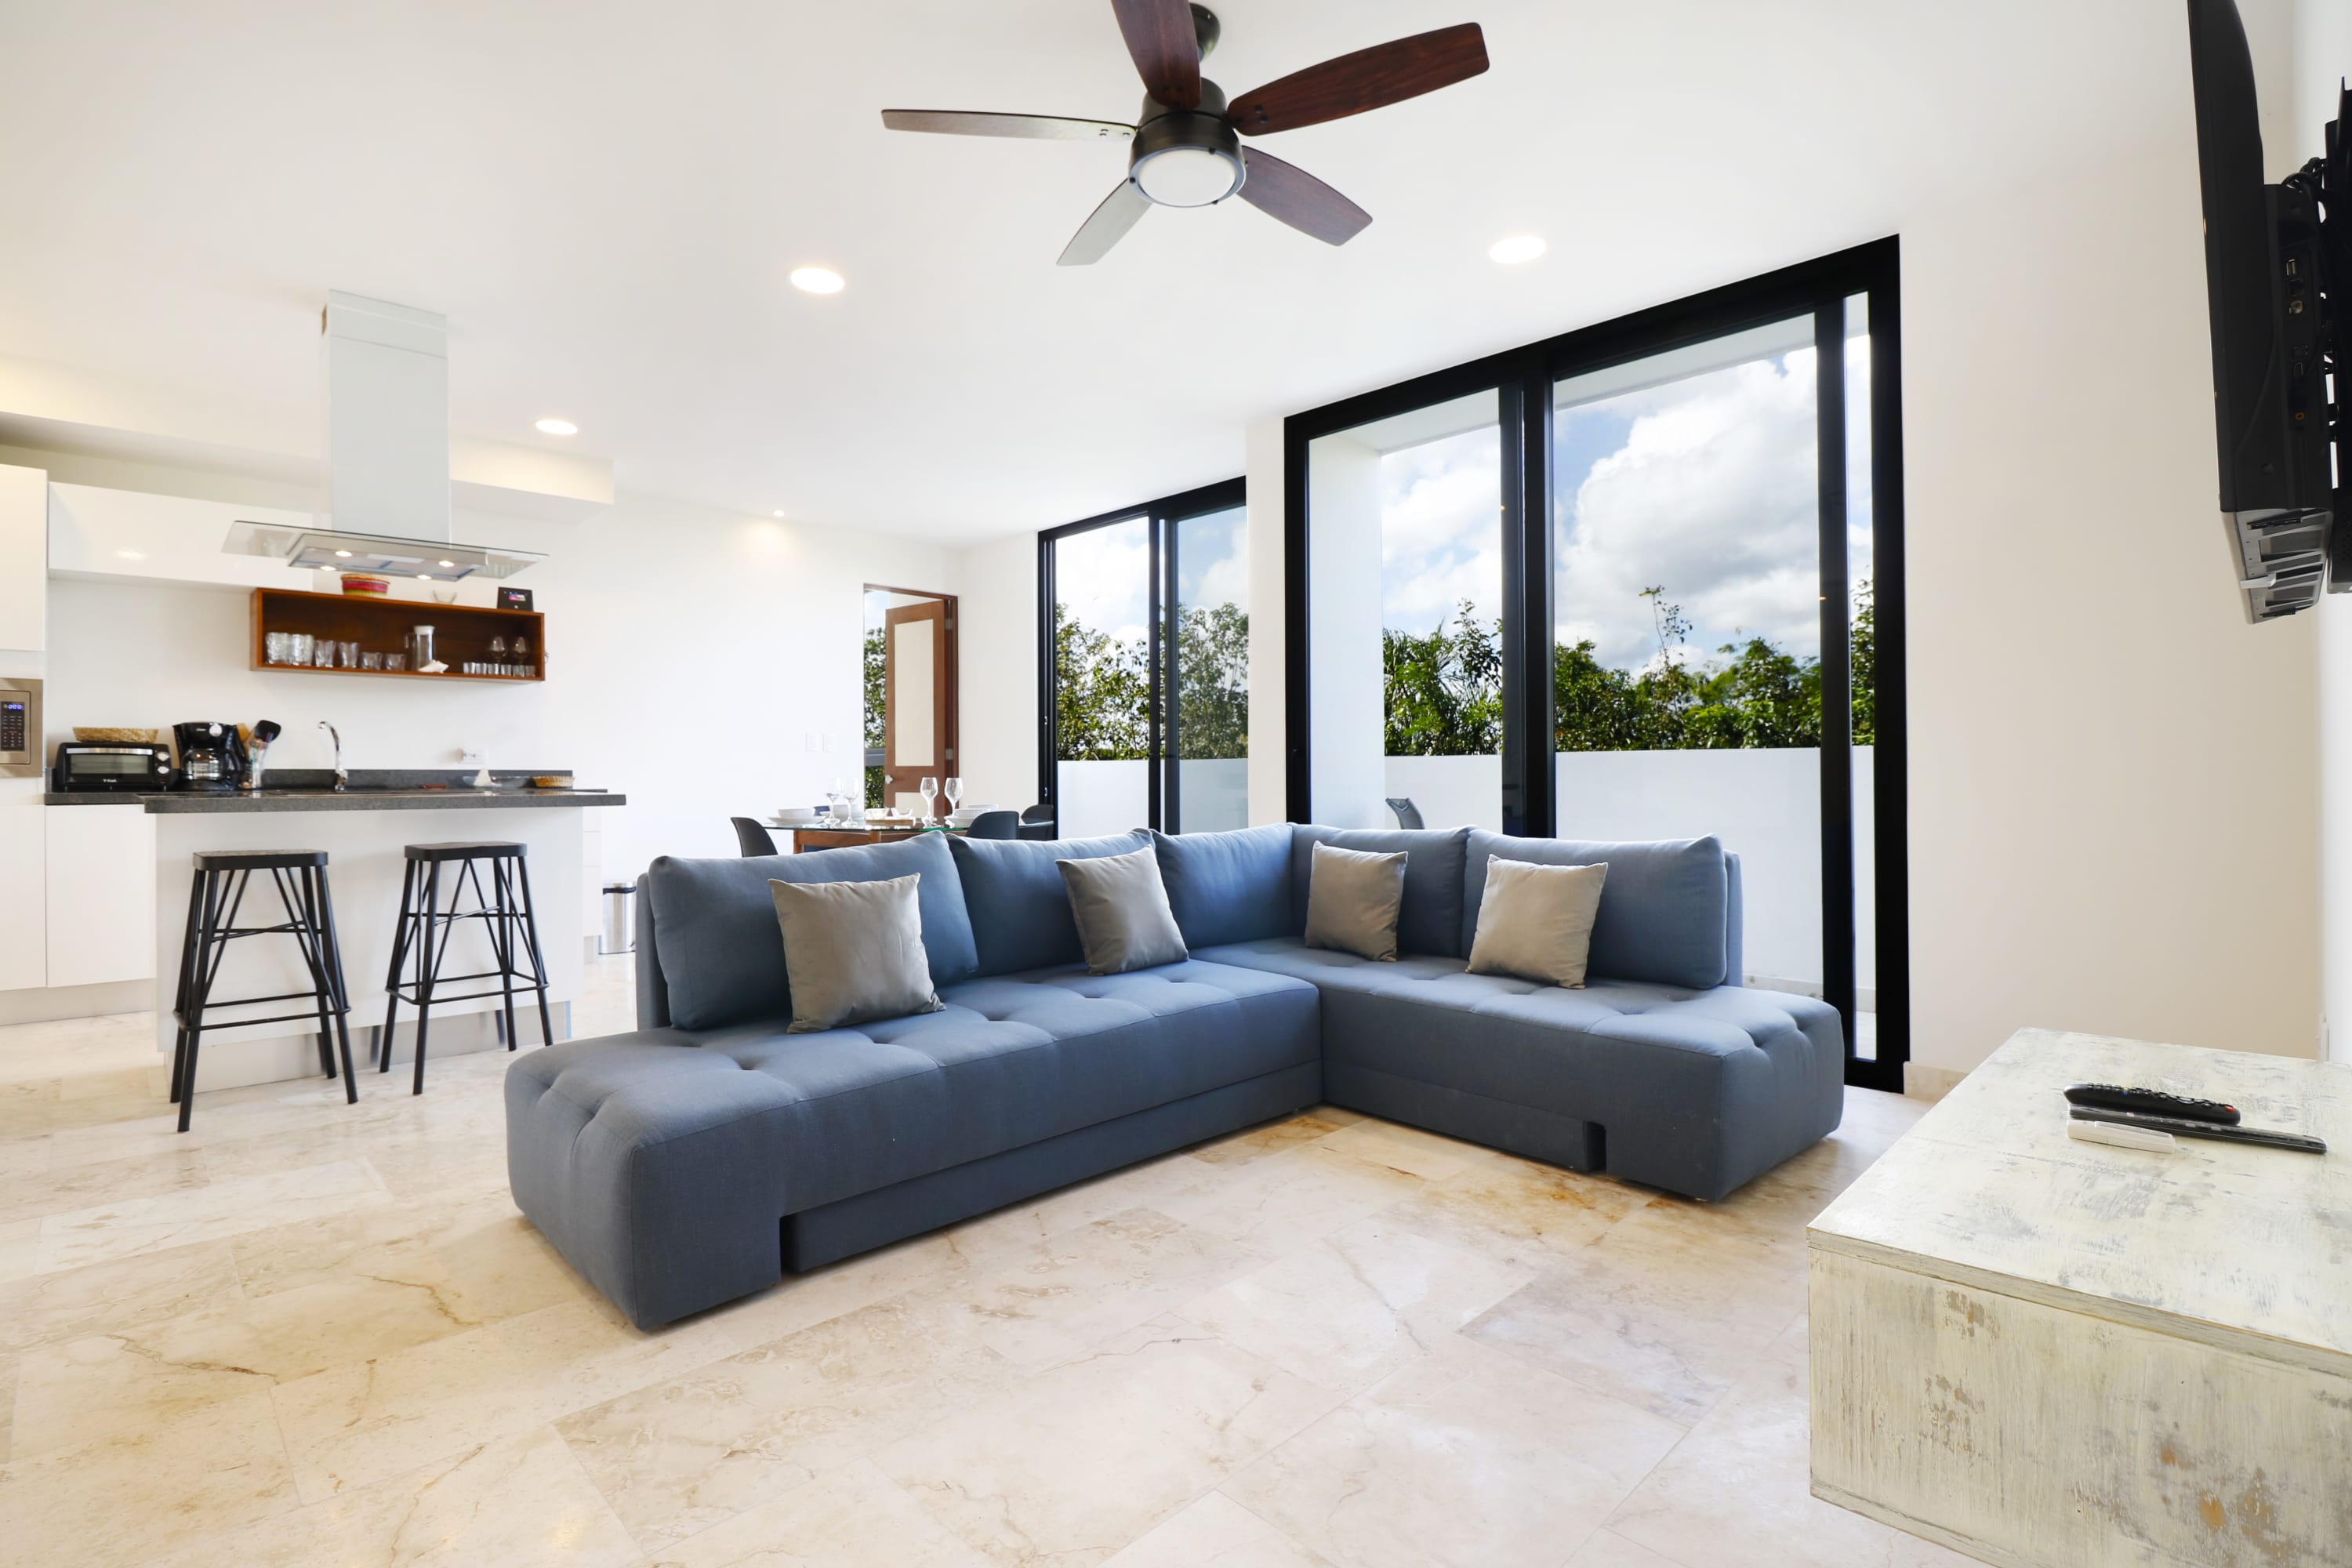 2BR Modern Apartment with Amazing Amenities in Akumal  !!!